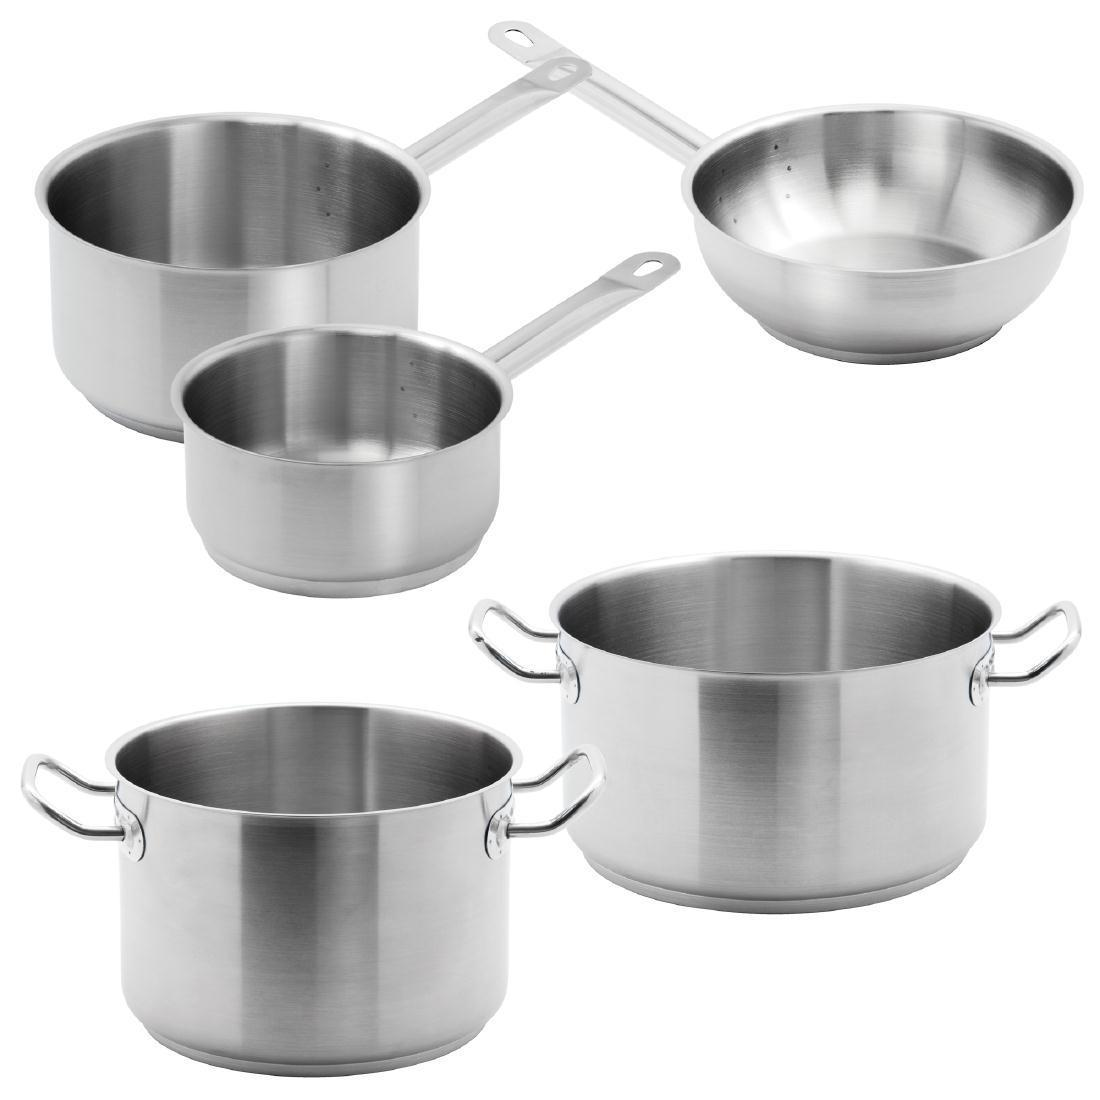 Special Offer - 5 Vogue Pack Of Casserole, Stew and Saute Pans - S121